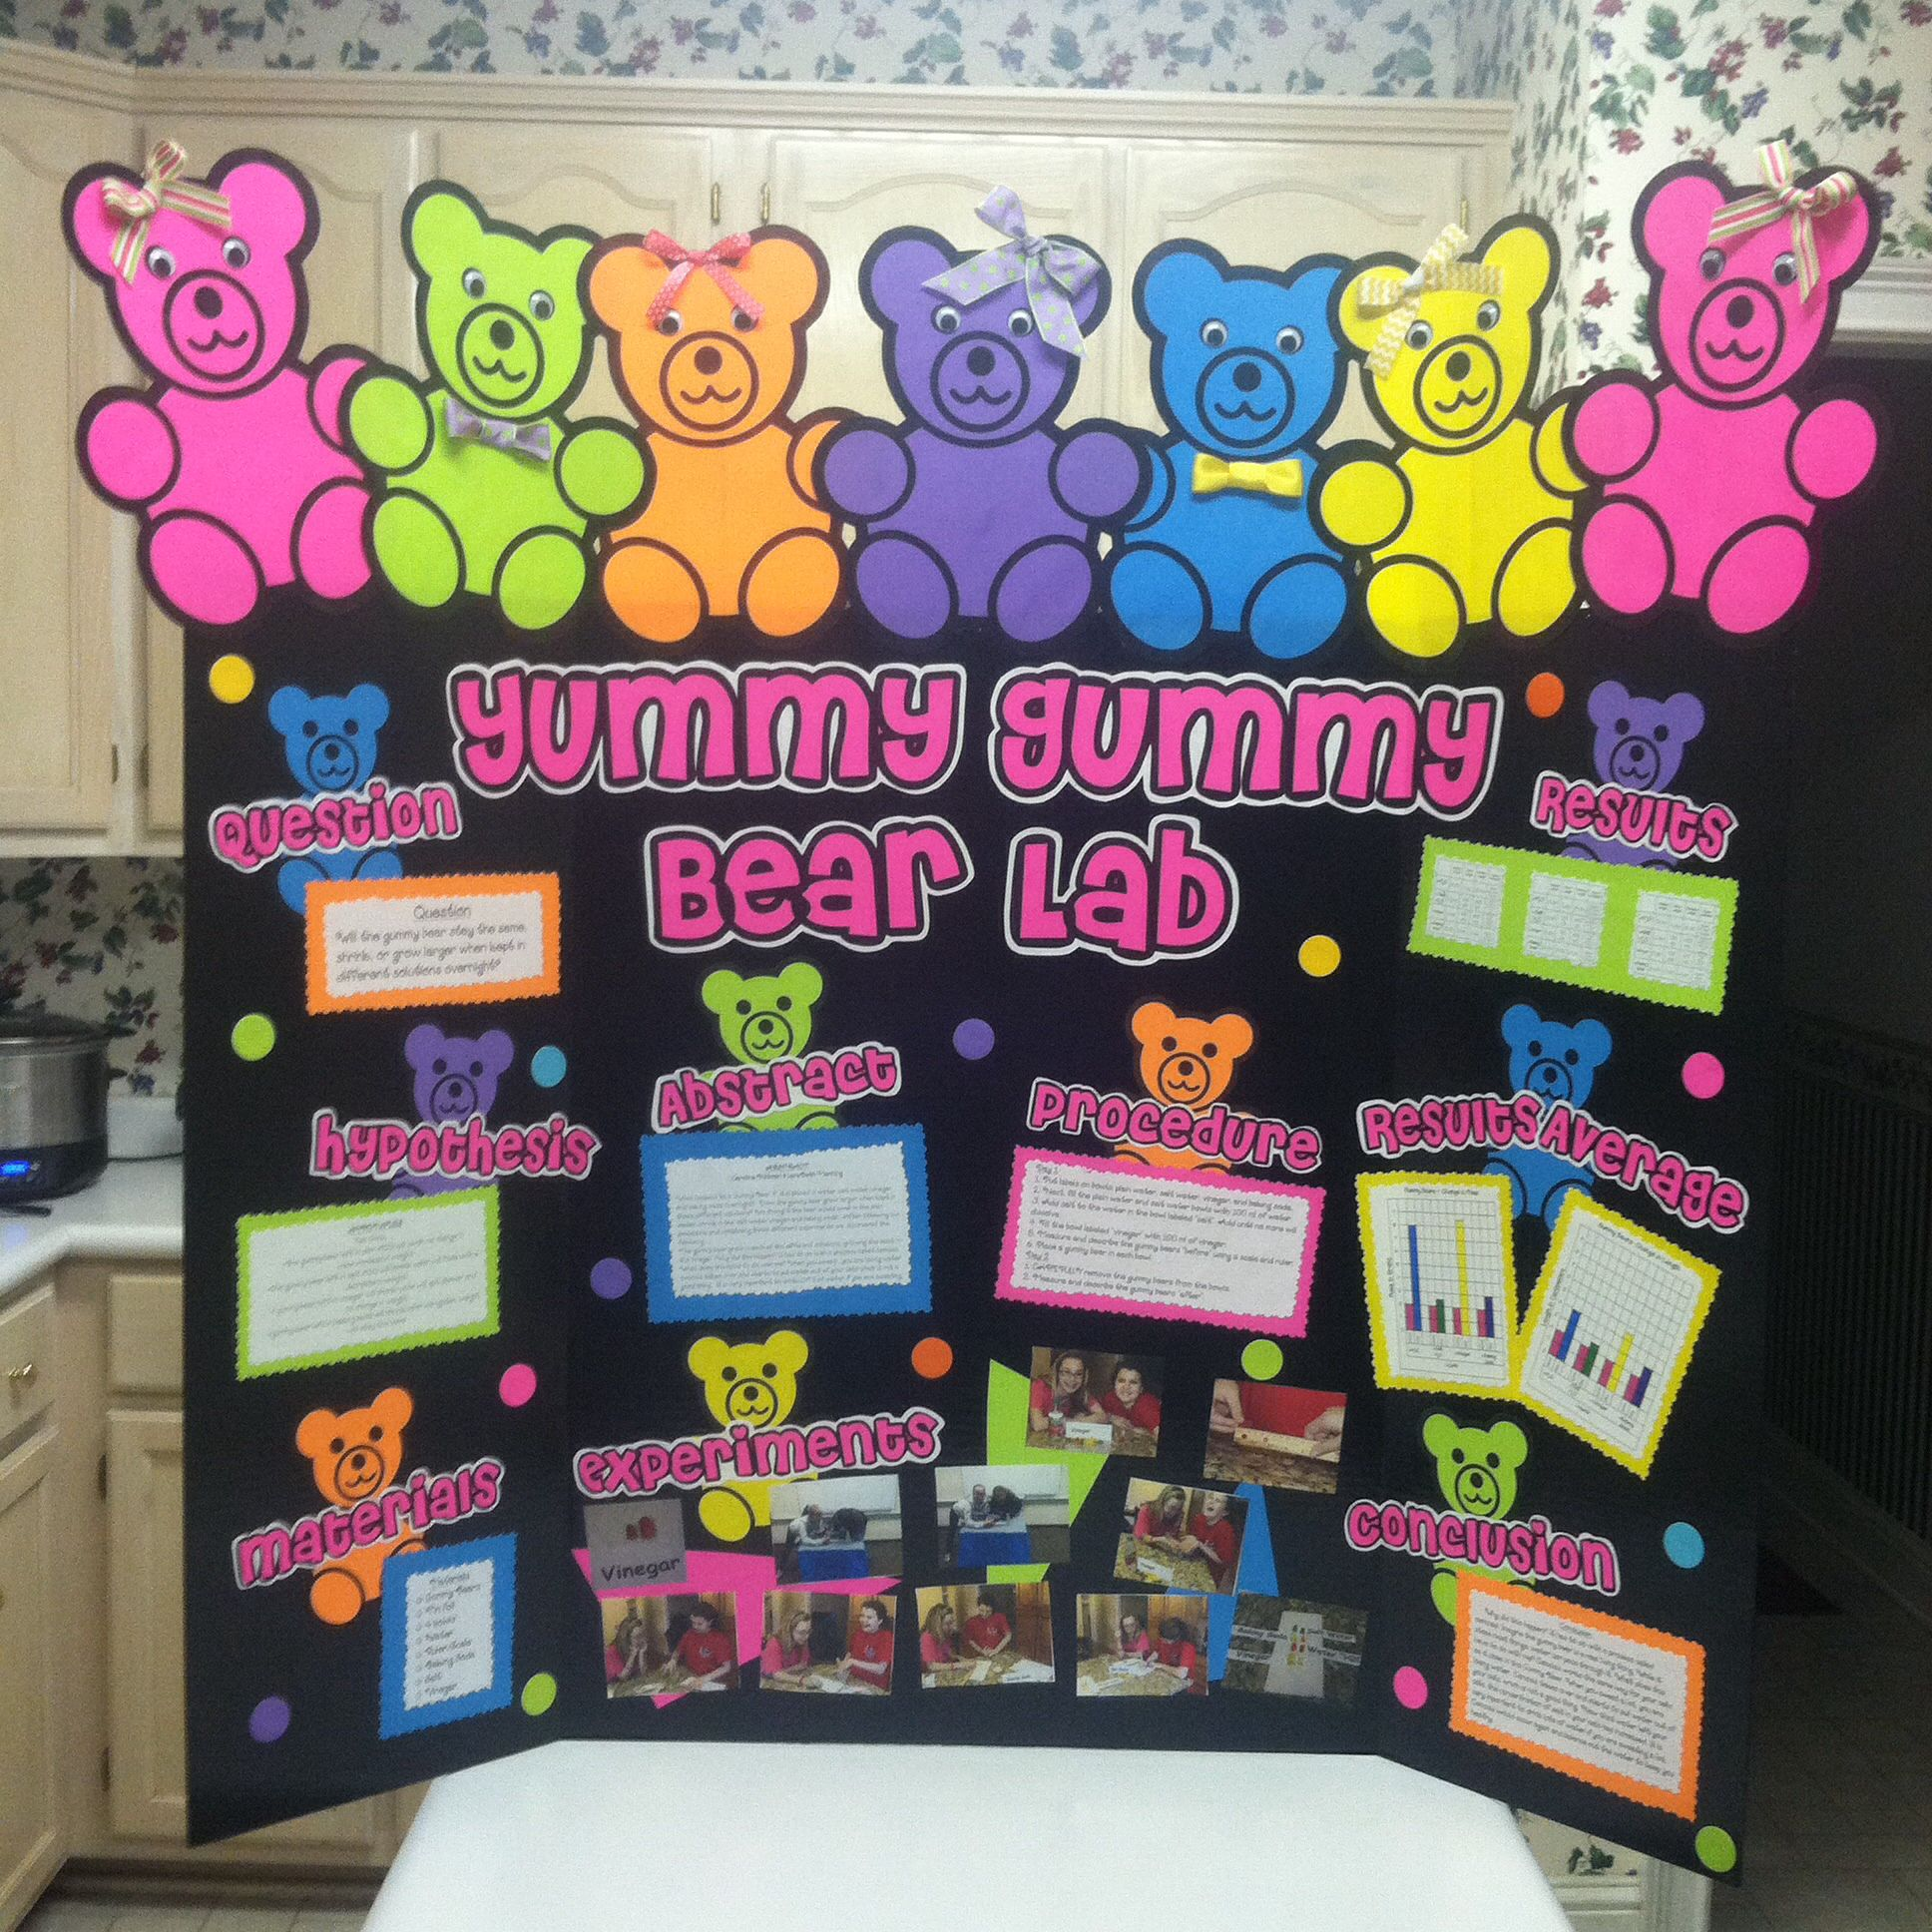 yummy gummy bear lab larabeth and caroline s science fair larabeth and caroline s science fair project